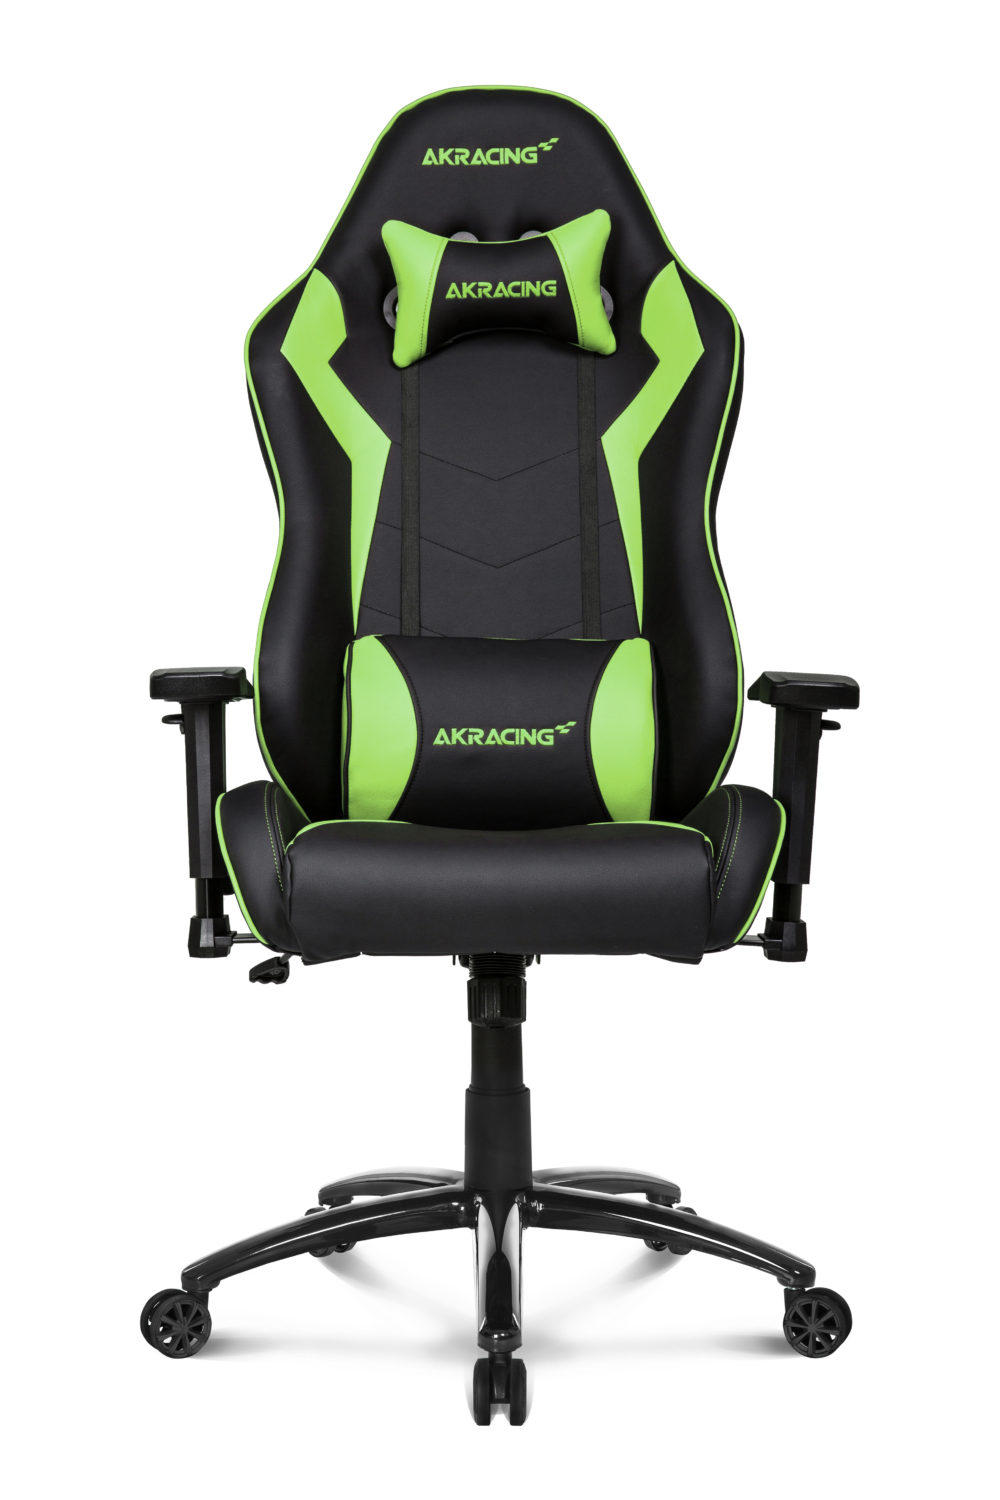 AKRacing Core SX gamestoel groen